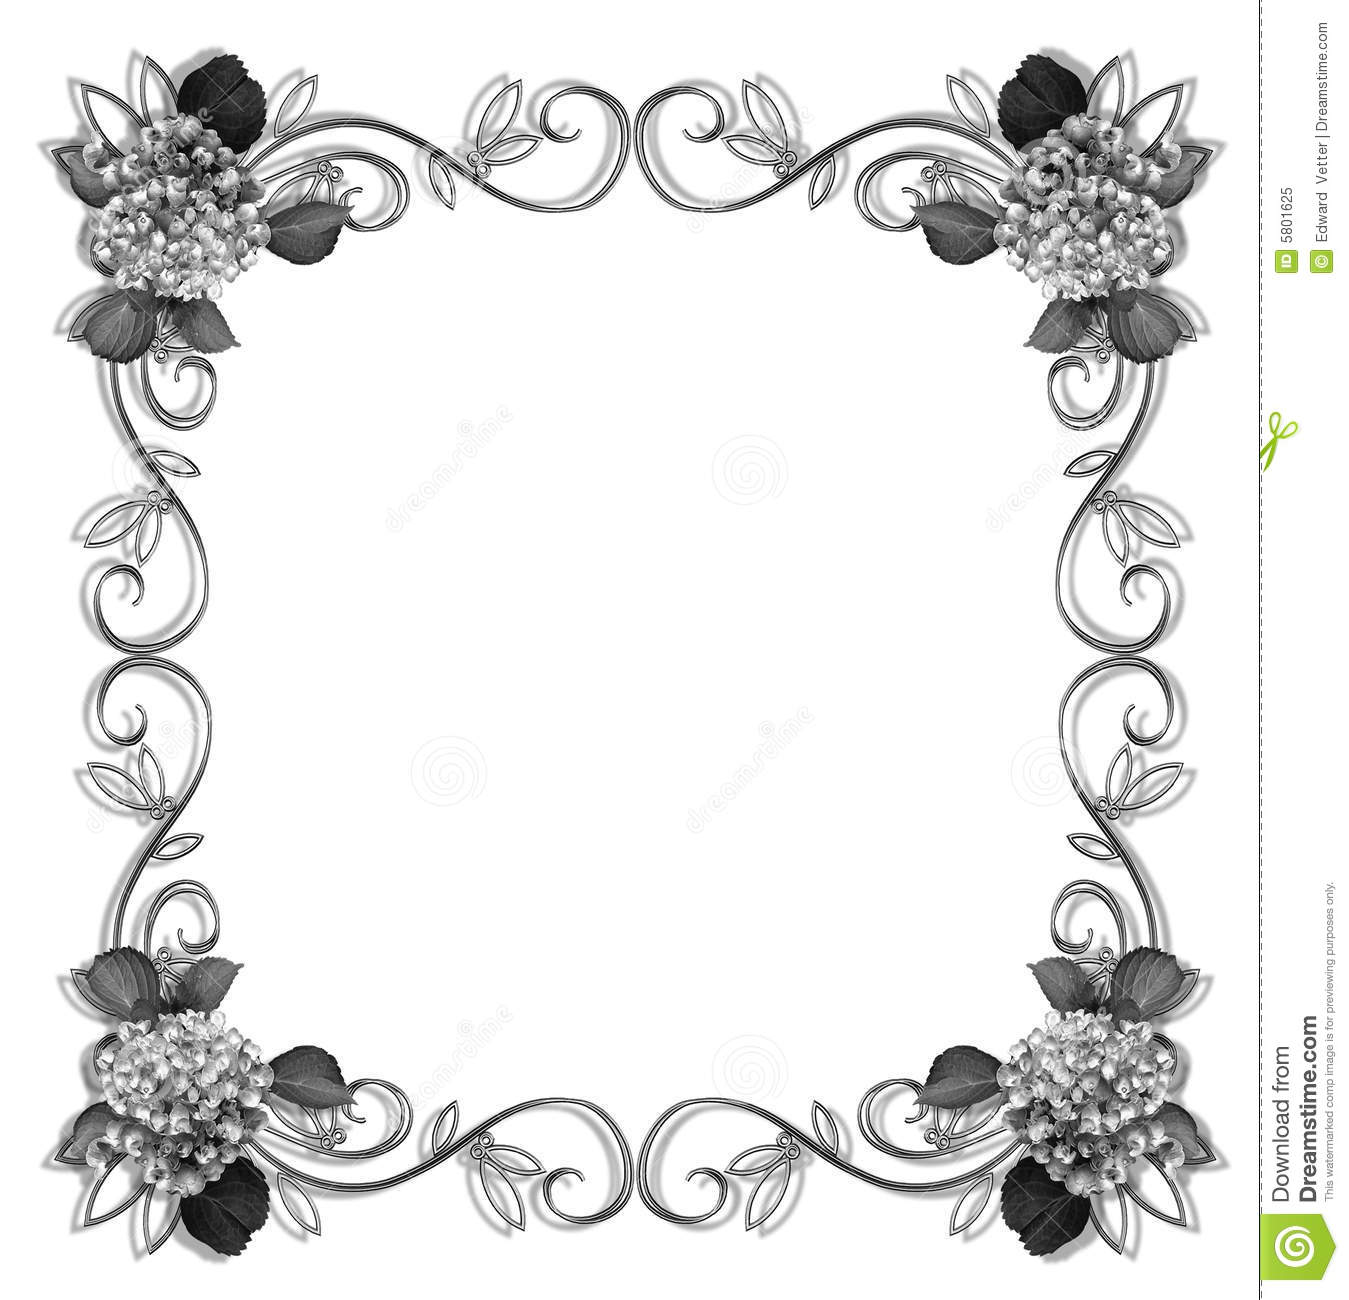 Floral Border Design Element Black And White Stock